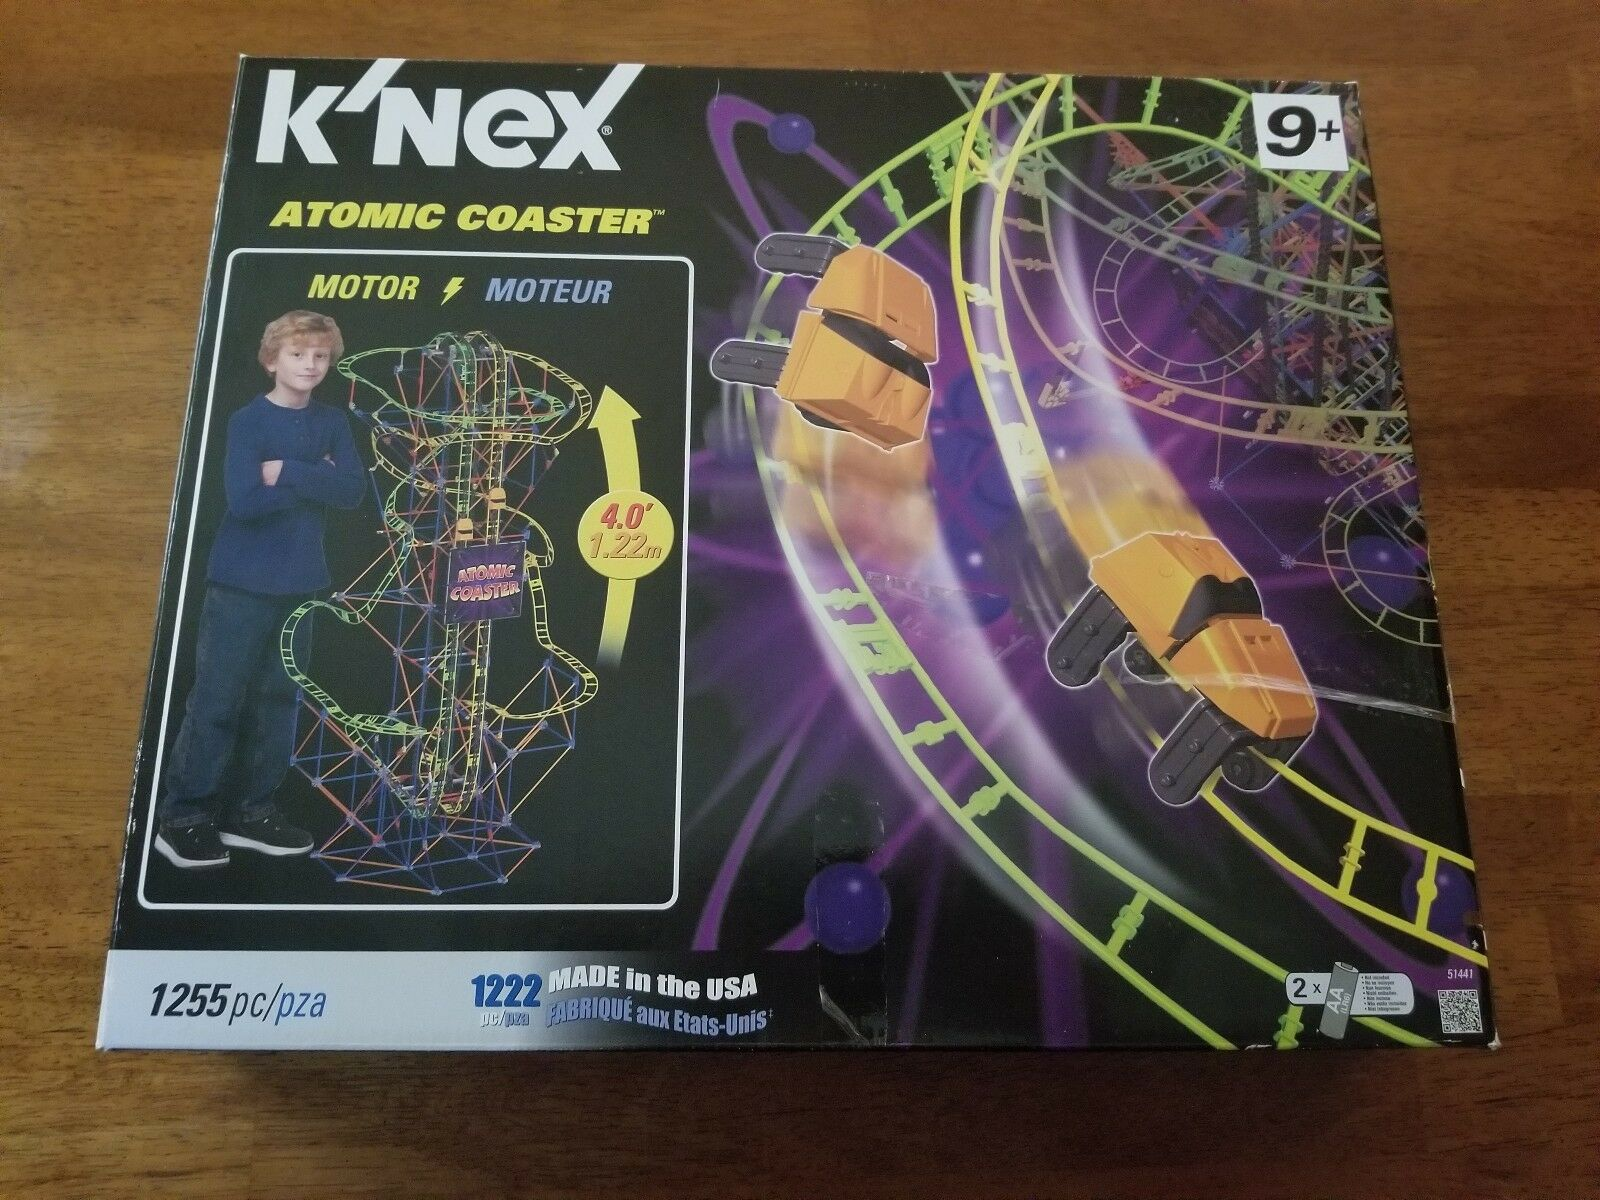 K'NEX Atomic Coaster Building Set Motorized 4' High 2012 COMPLETE